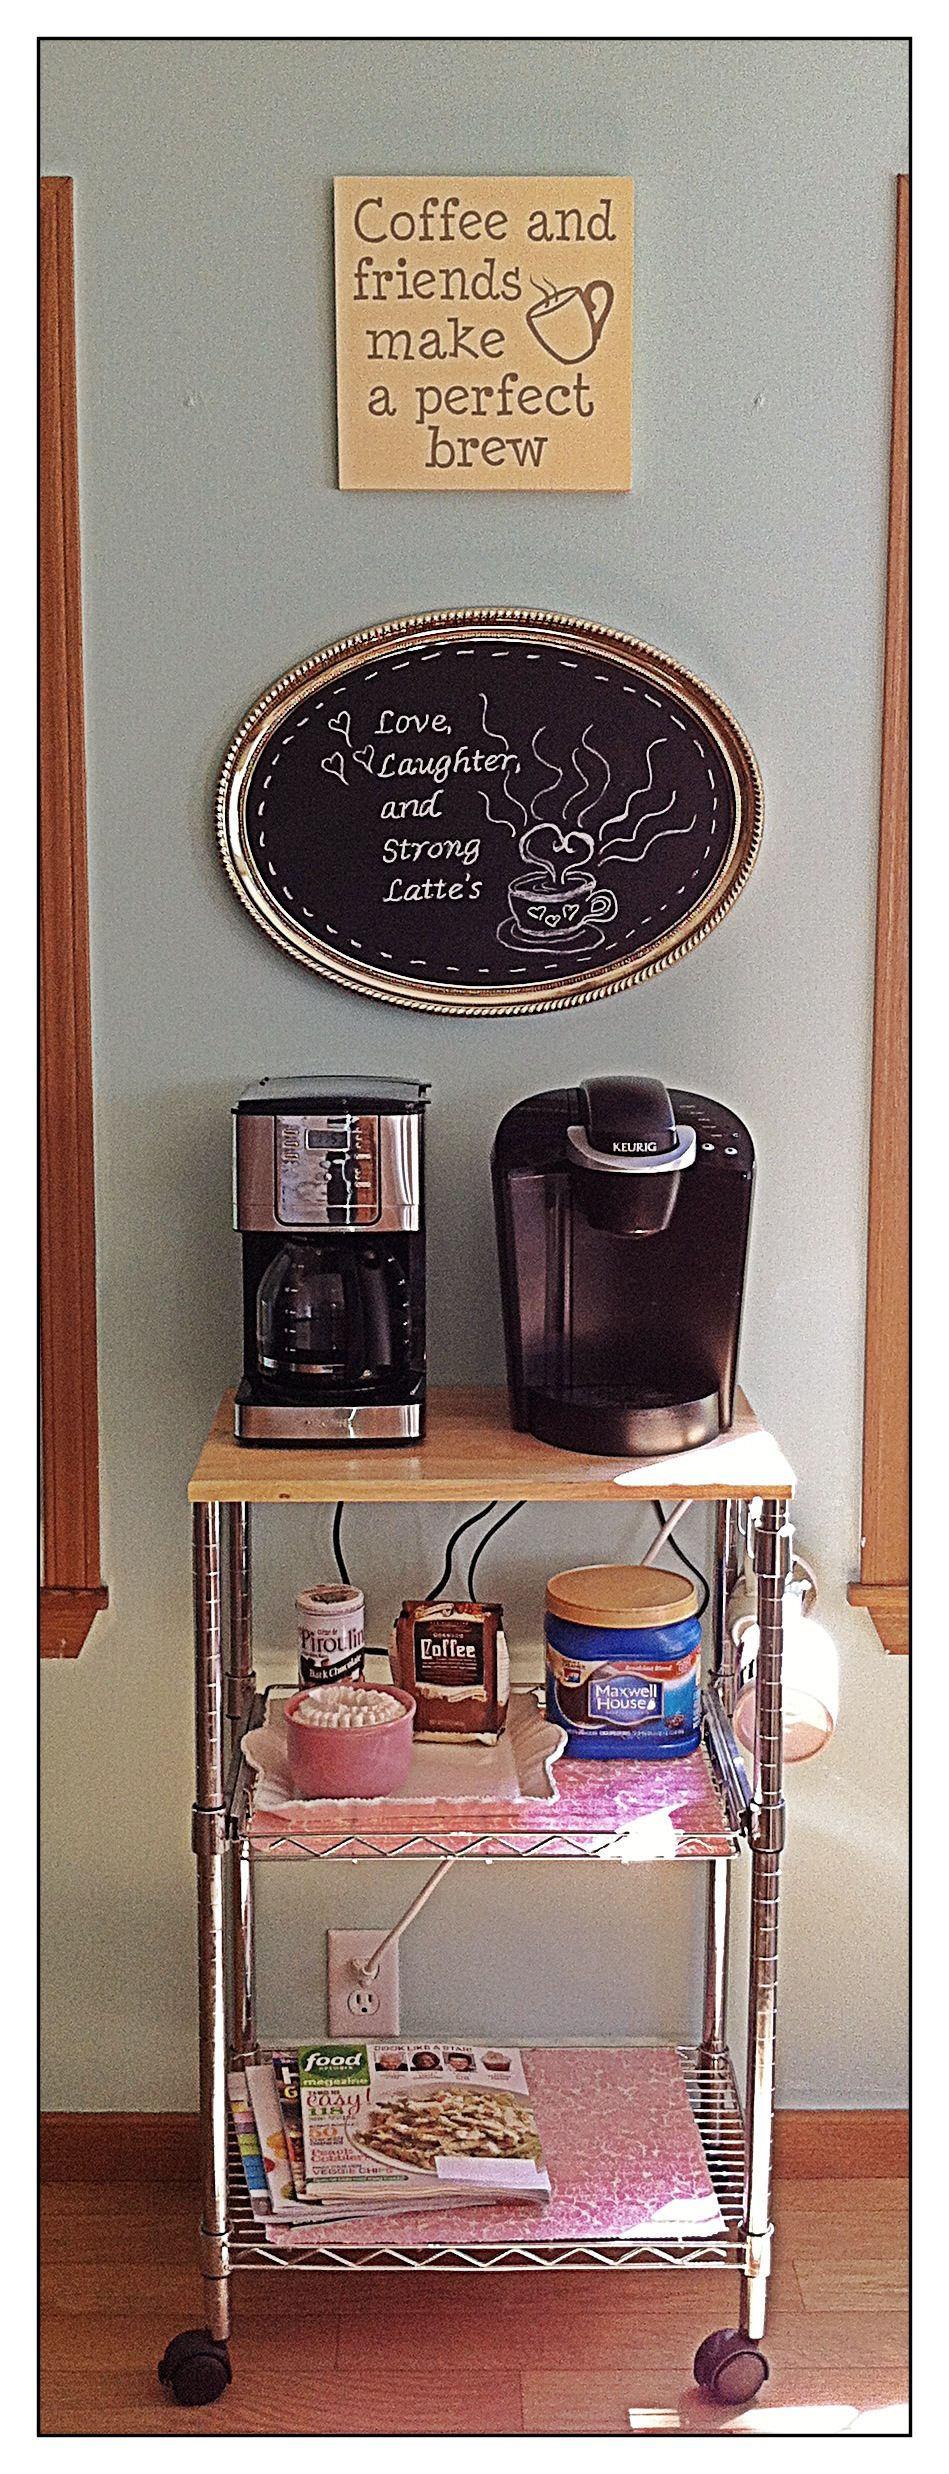 Office Break Room Design: 25+ DIY Coffee Bar Ideas For Your Home (Stunning Pictures